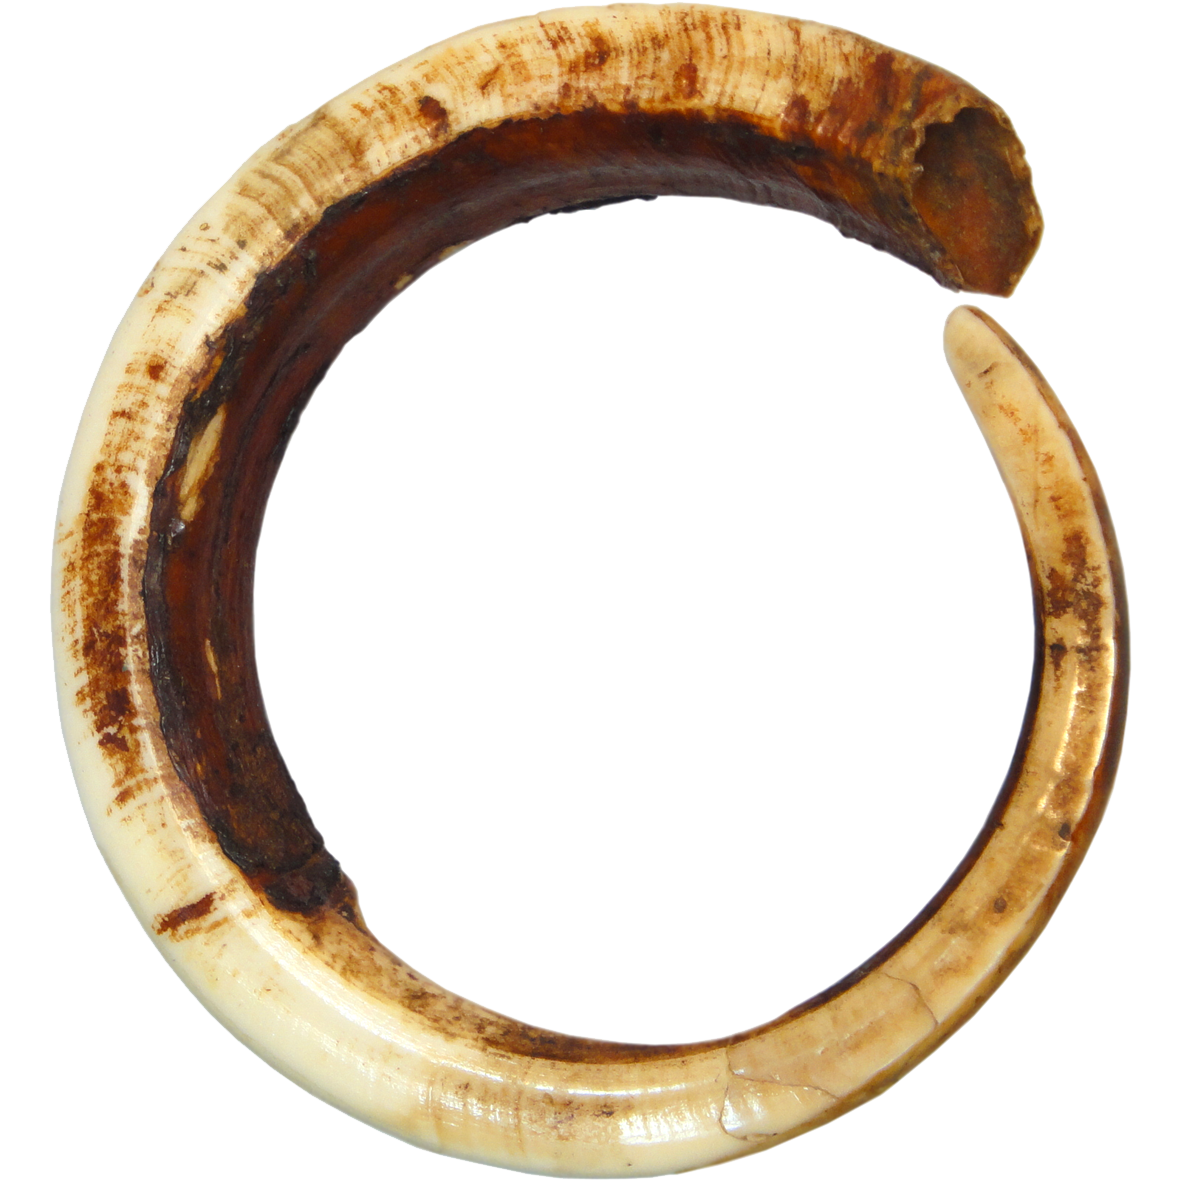 Papua New Guinea, North-East Coast, Full Circle Boar Tusk (restored) (obverse)